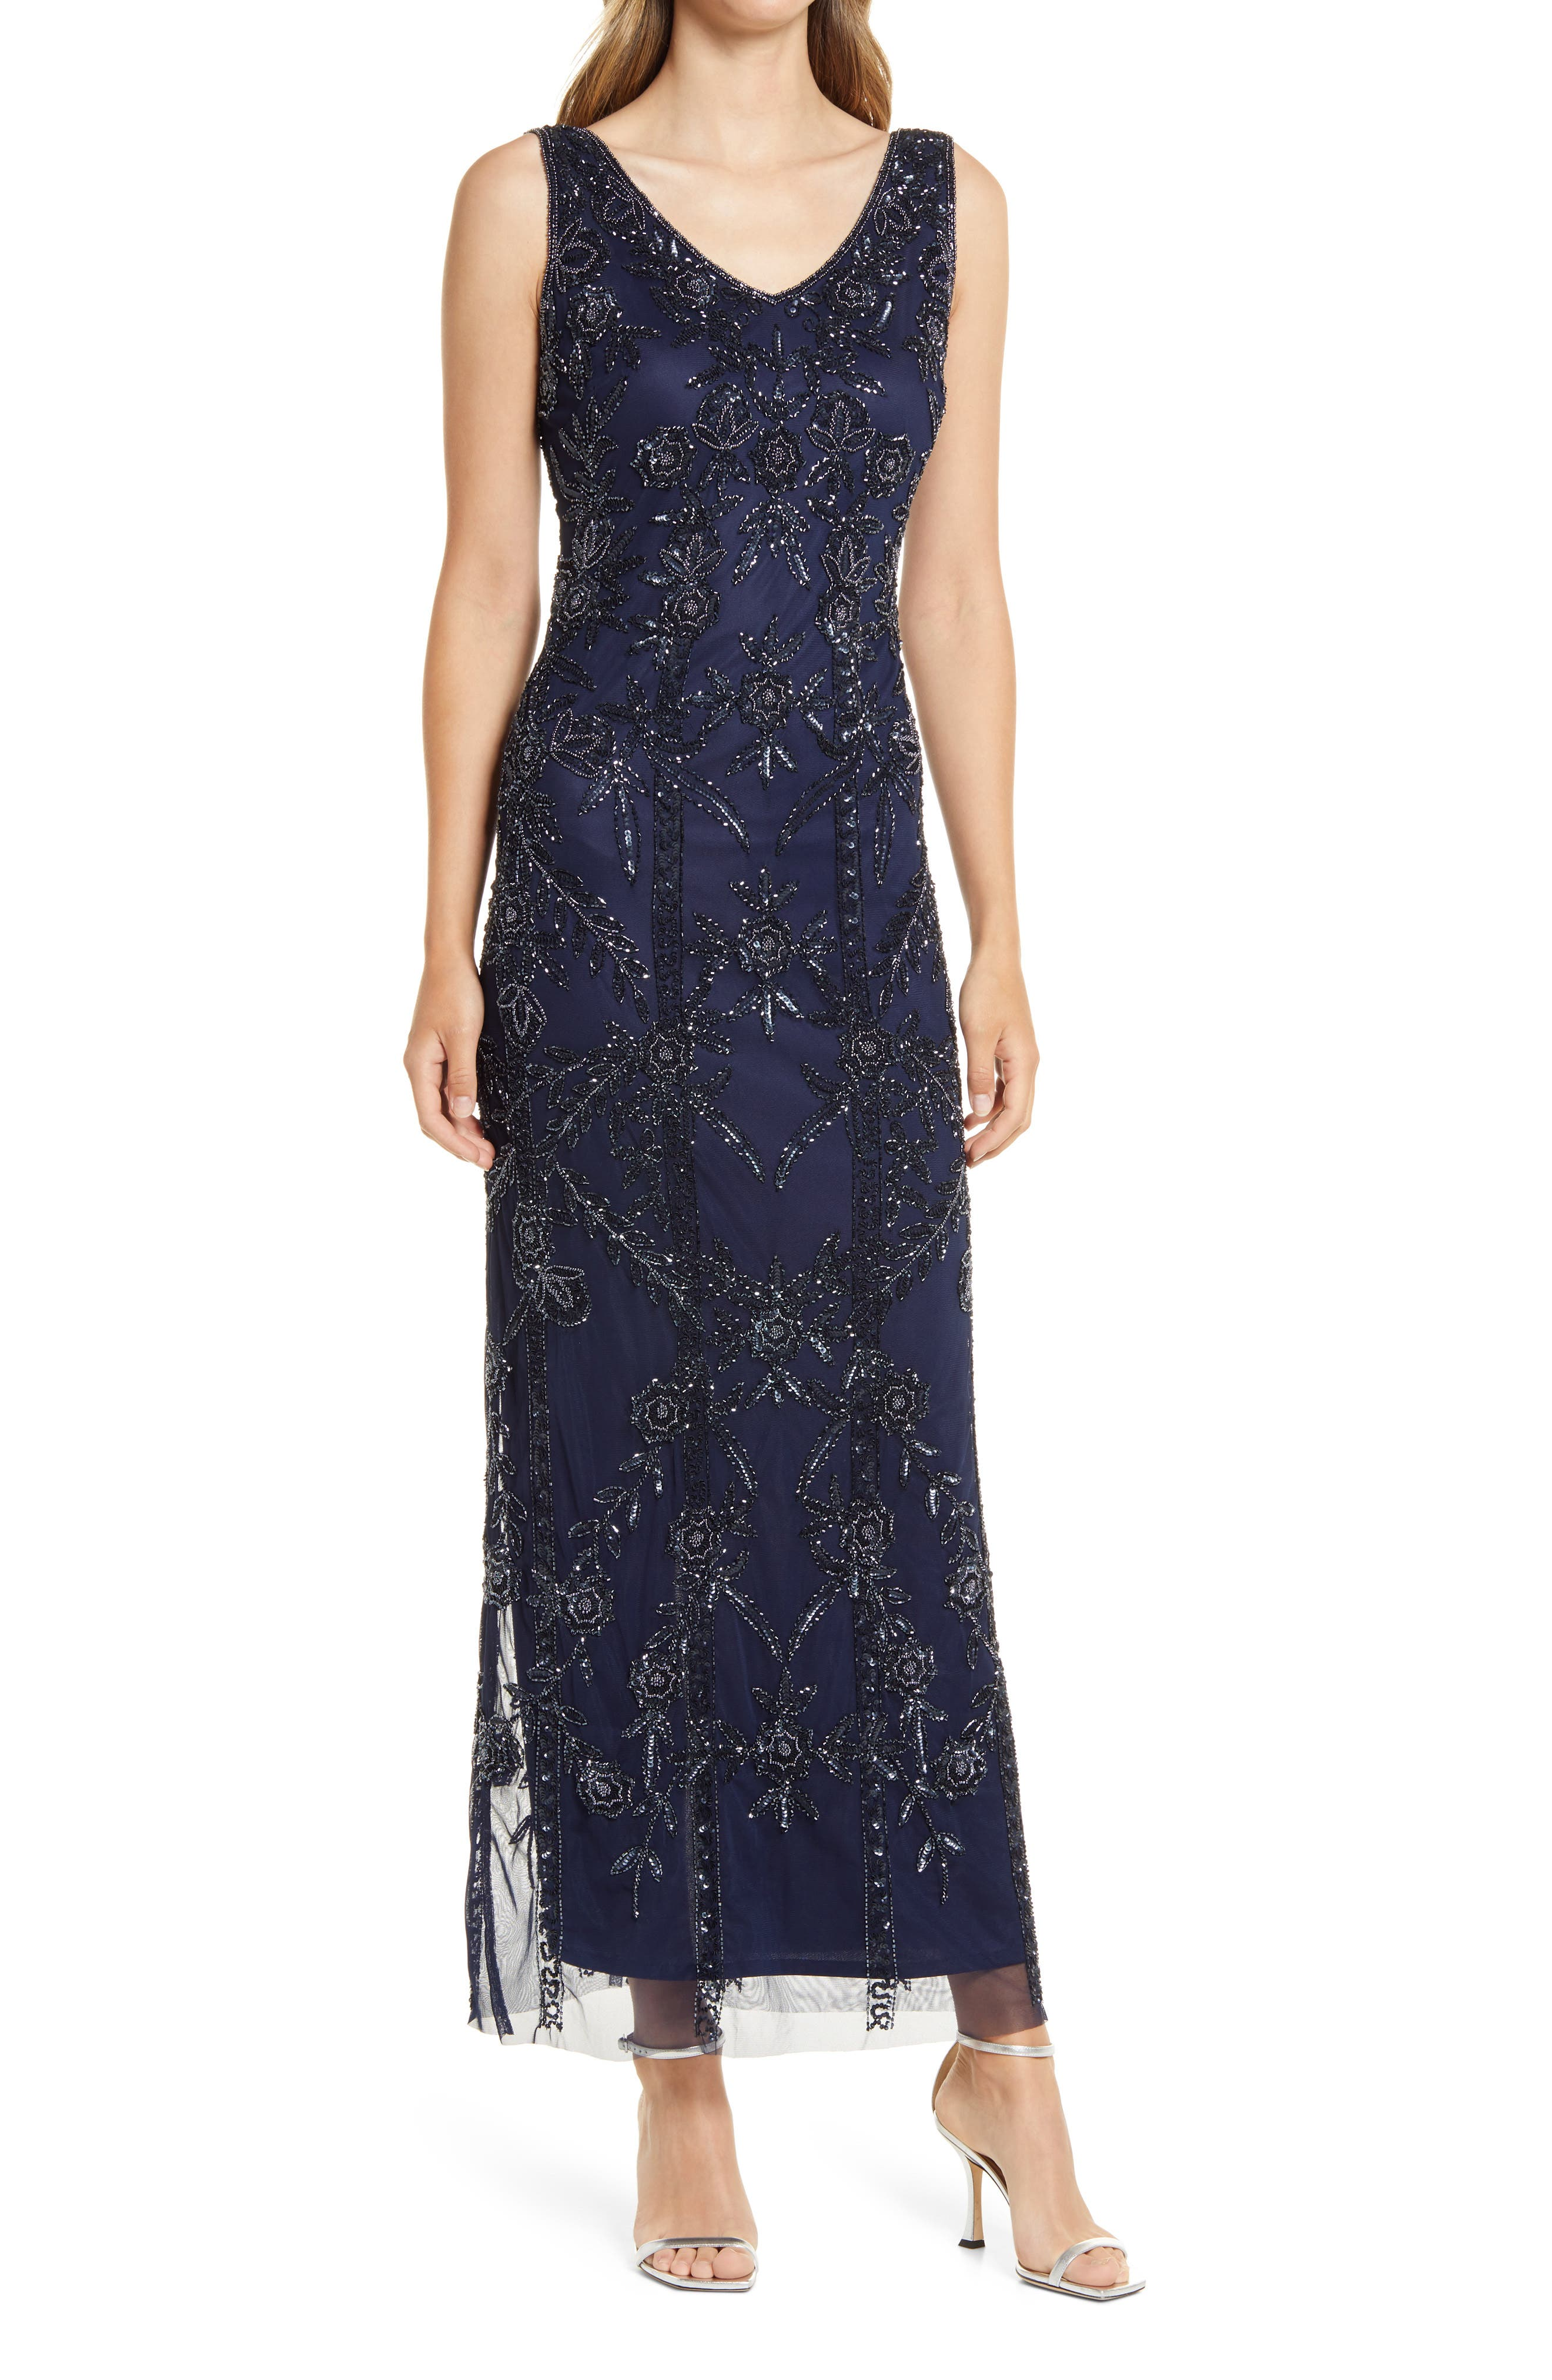 Great Gatsby Dress – Great Gatsby Dresses for Sale Womens Pisarro Nights Beaded Mesh Gown Size 2 - Blue $238.00 AT vintagedancer.com